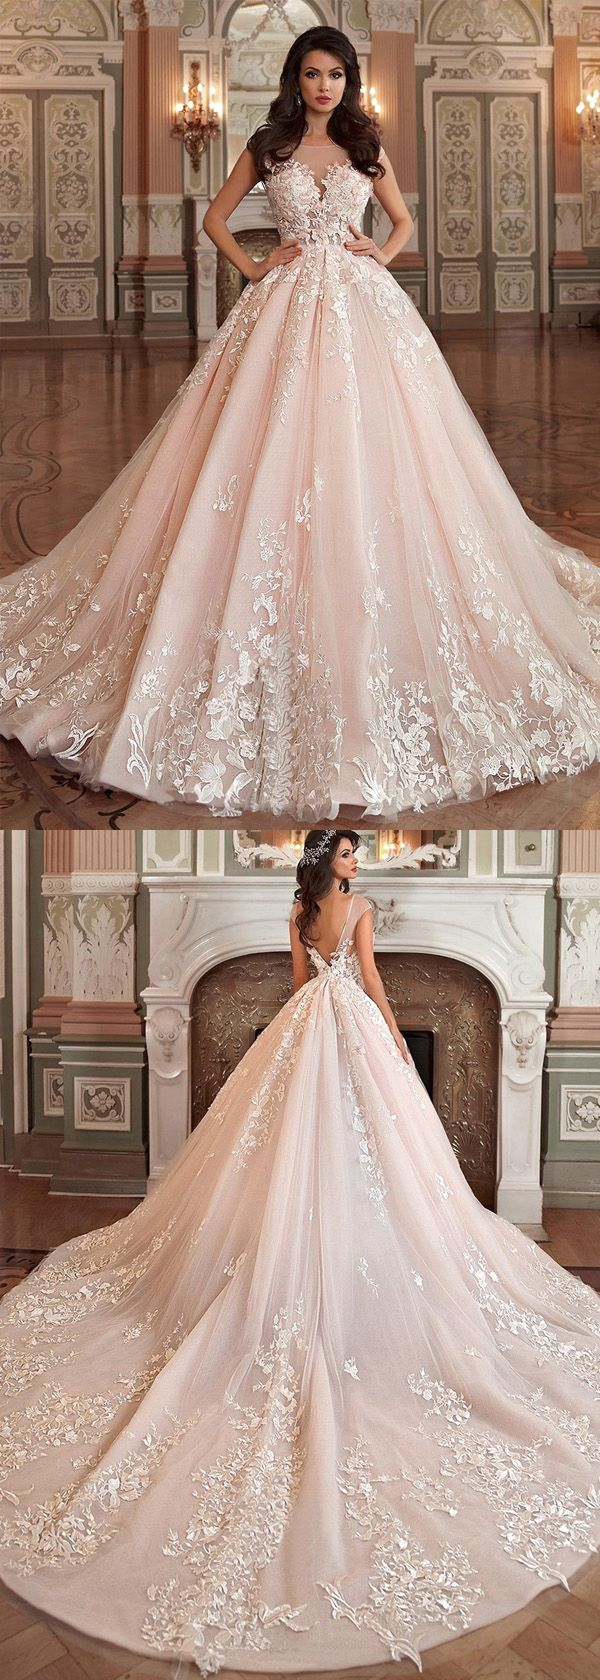 Stunning Tulle Organza Bateau Neckline Ball Gown Wedding Dress With Lace Appliques 3D Flowers